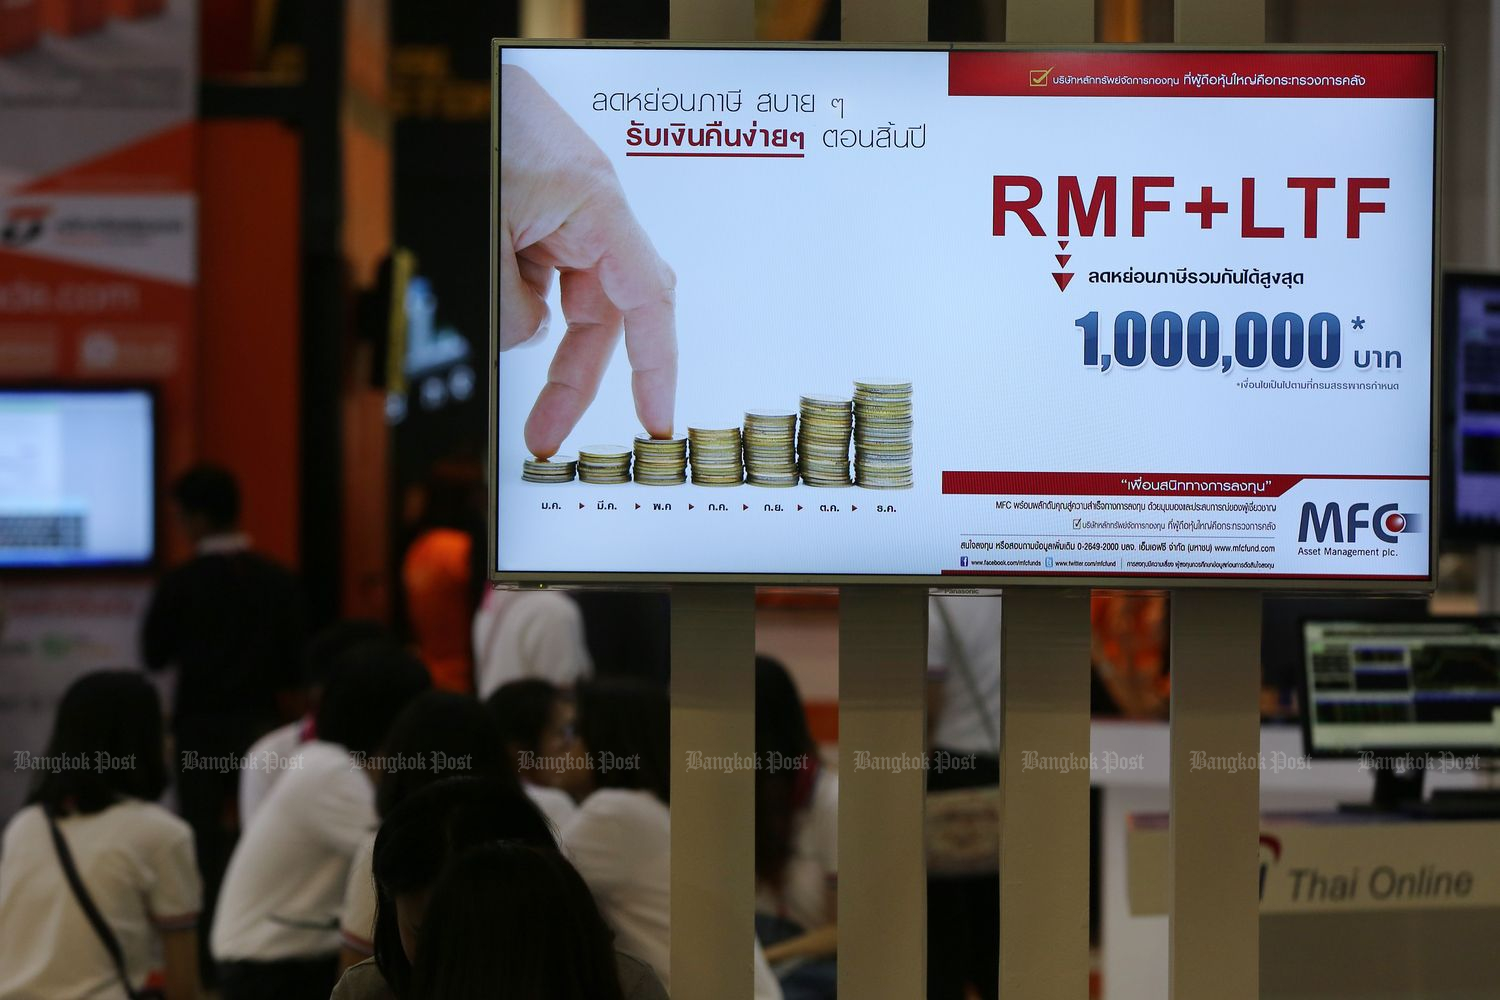 An advertisement for RMF and LTF funds are seen in Bangkok in 2015. (Bangkok Post file photo)